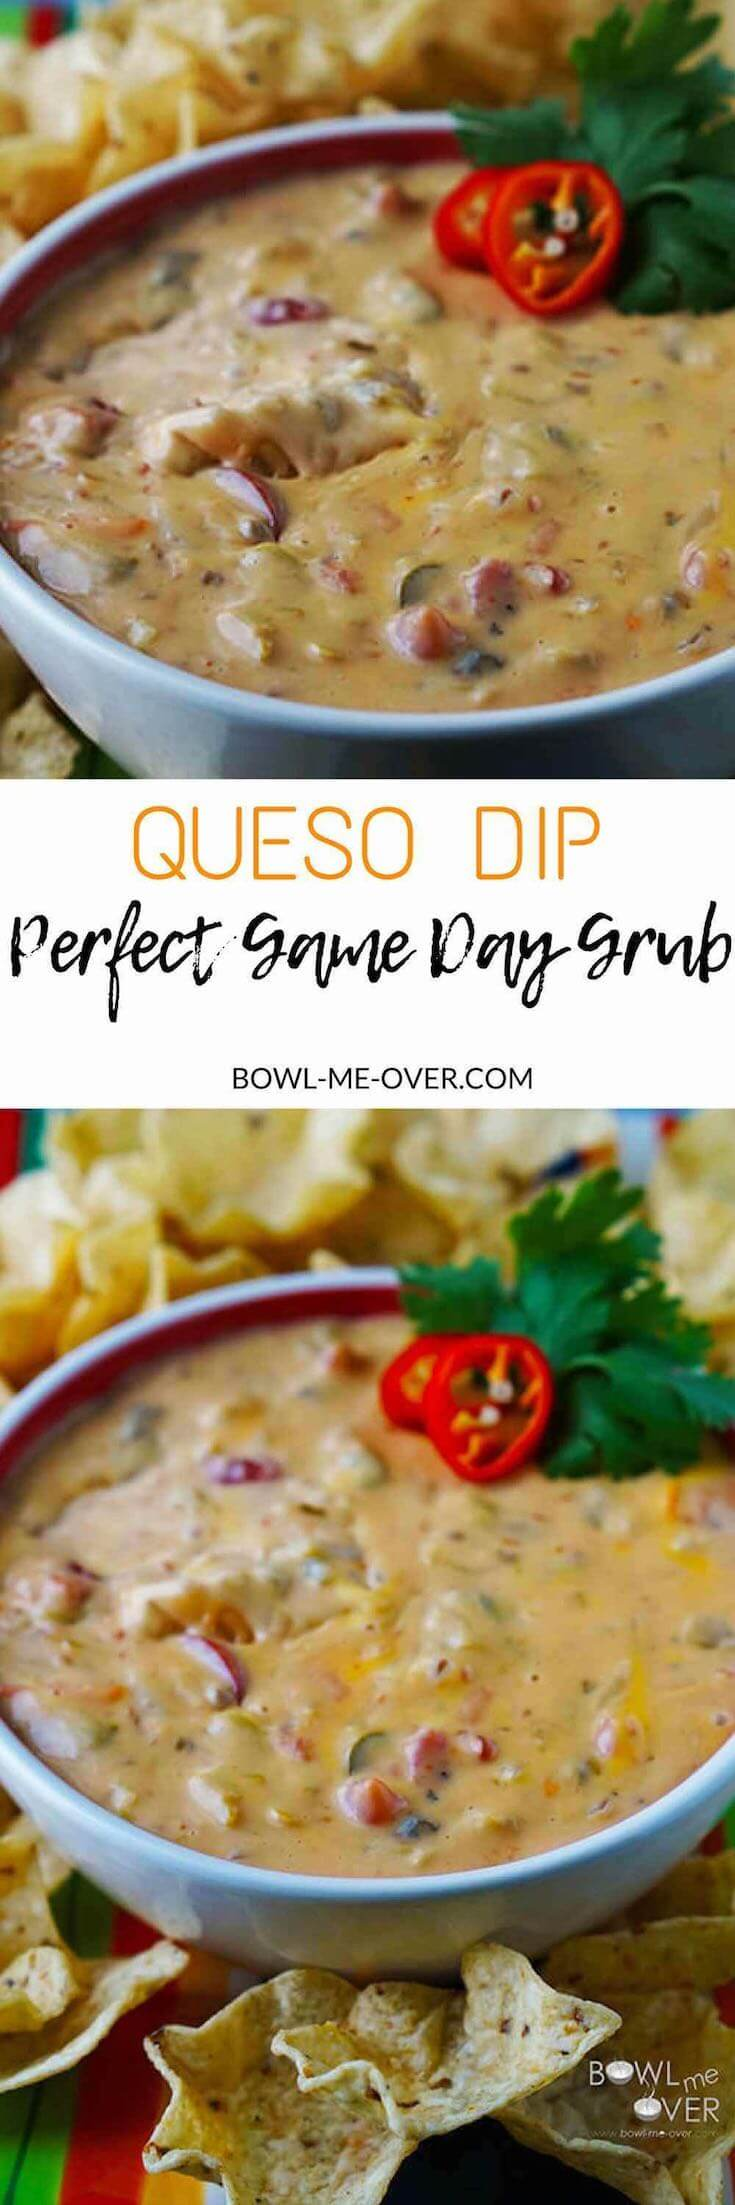 Want an easy side to share for game day? Grab this recipe for Queso Dip! It couldn't be any easier, but it so delicious you won't be able to stop eating it! #QuesoDip #BowlMeOver